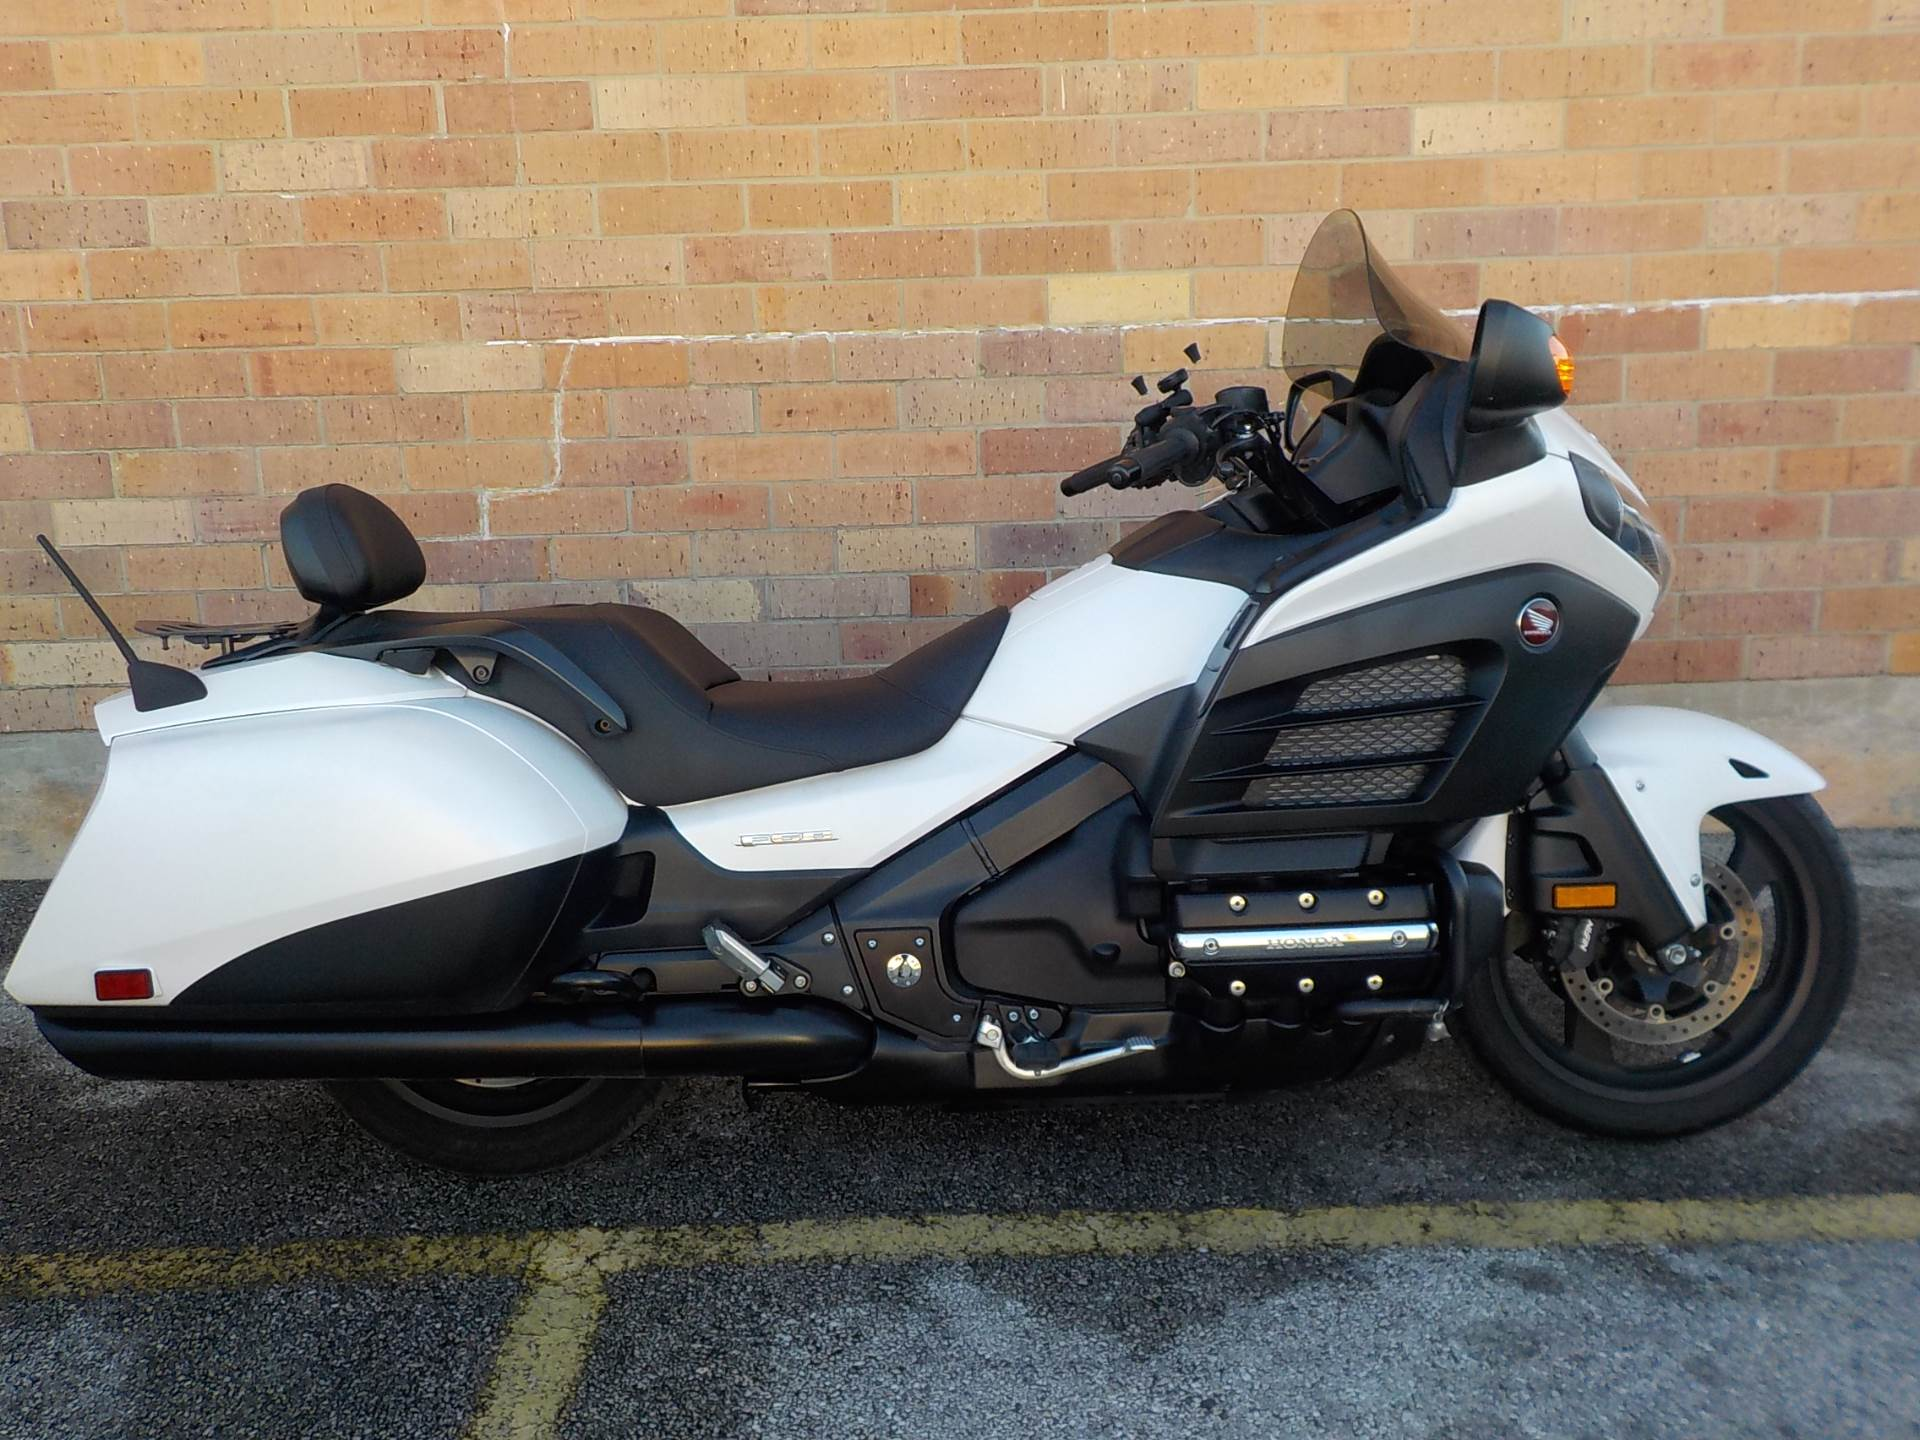 used 2013 honda motorcycles gold wing f6b for sale in san autos post. Black Bedroom Furniture Sets. Home Design Ideas